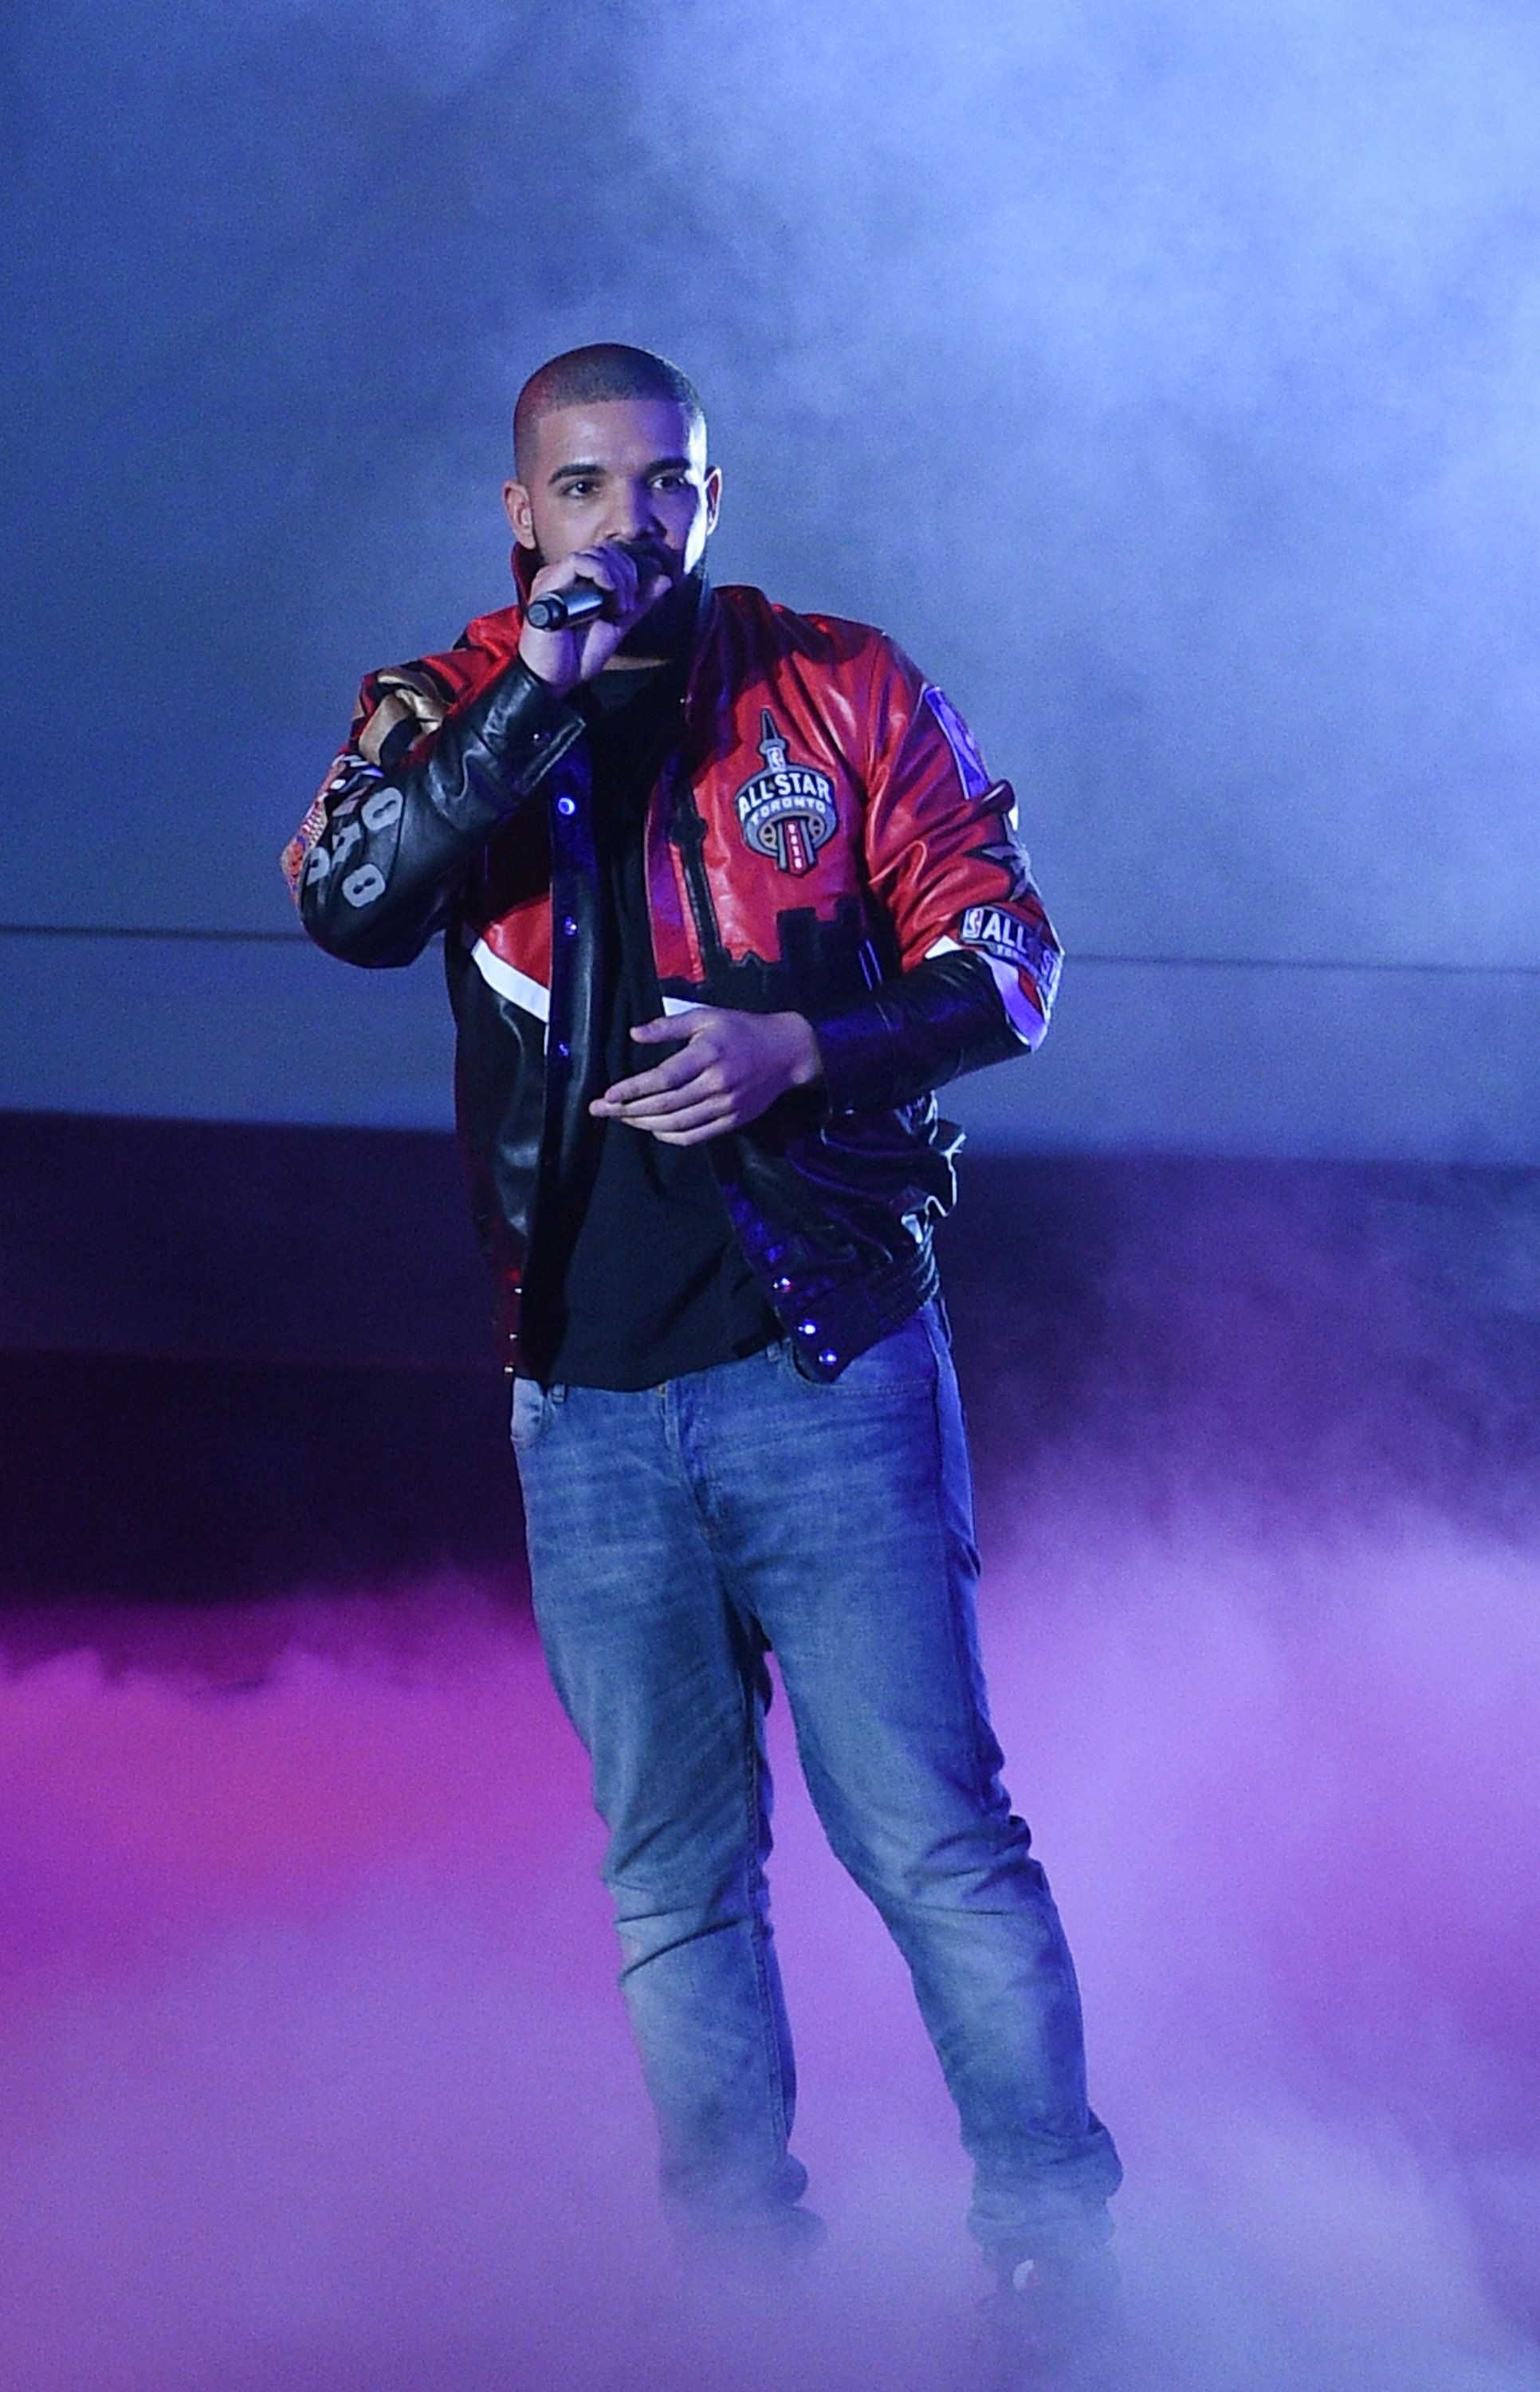 TORONTO, ON - FEBRUARY 14:  Musician Drake attends The 2016 NBA All-Star Game at Air Canada Centre on February 14, 2016 in Toronto, Canada.  (Photo by George Pimentel/Getty Images)